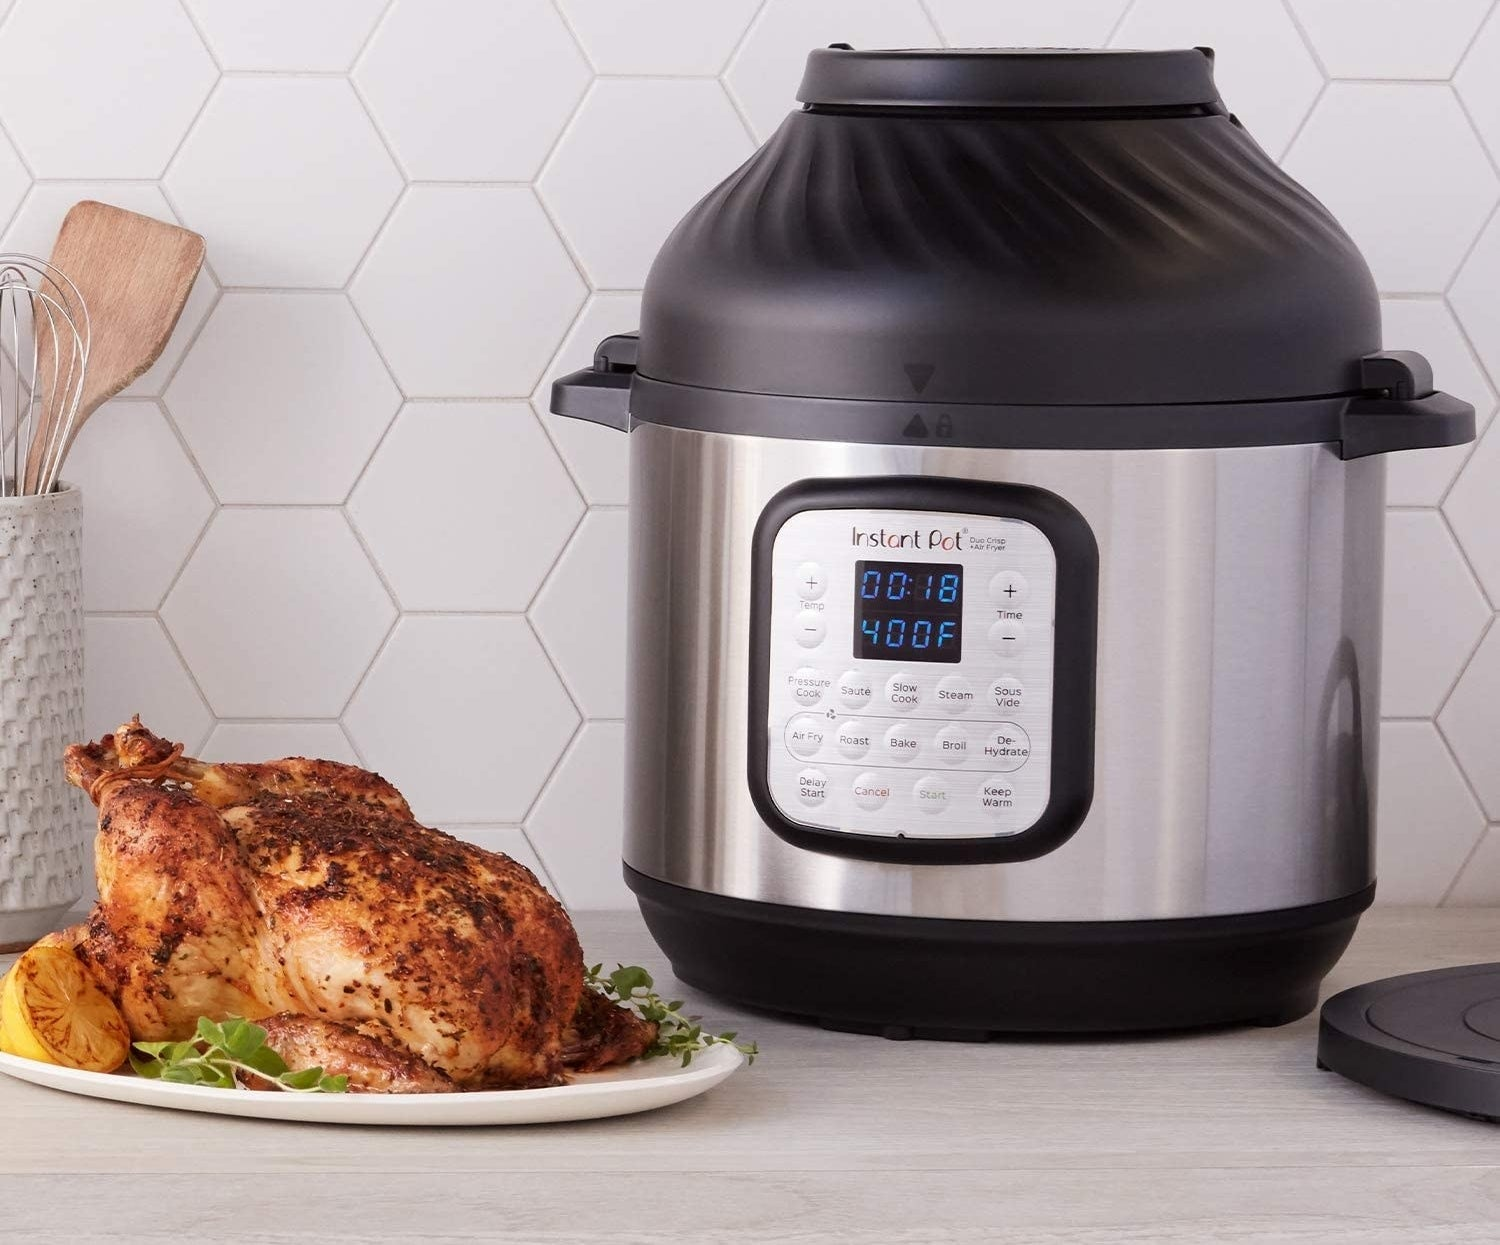 Silver and black instant pot with control panel next to a cooked chicken